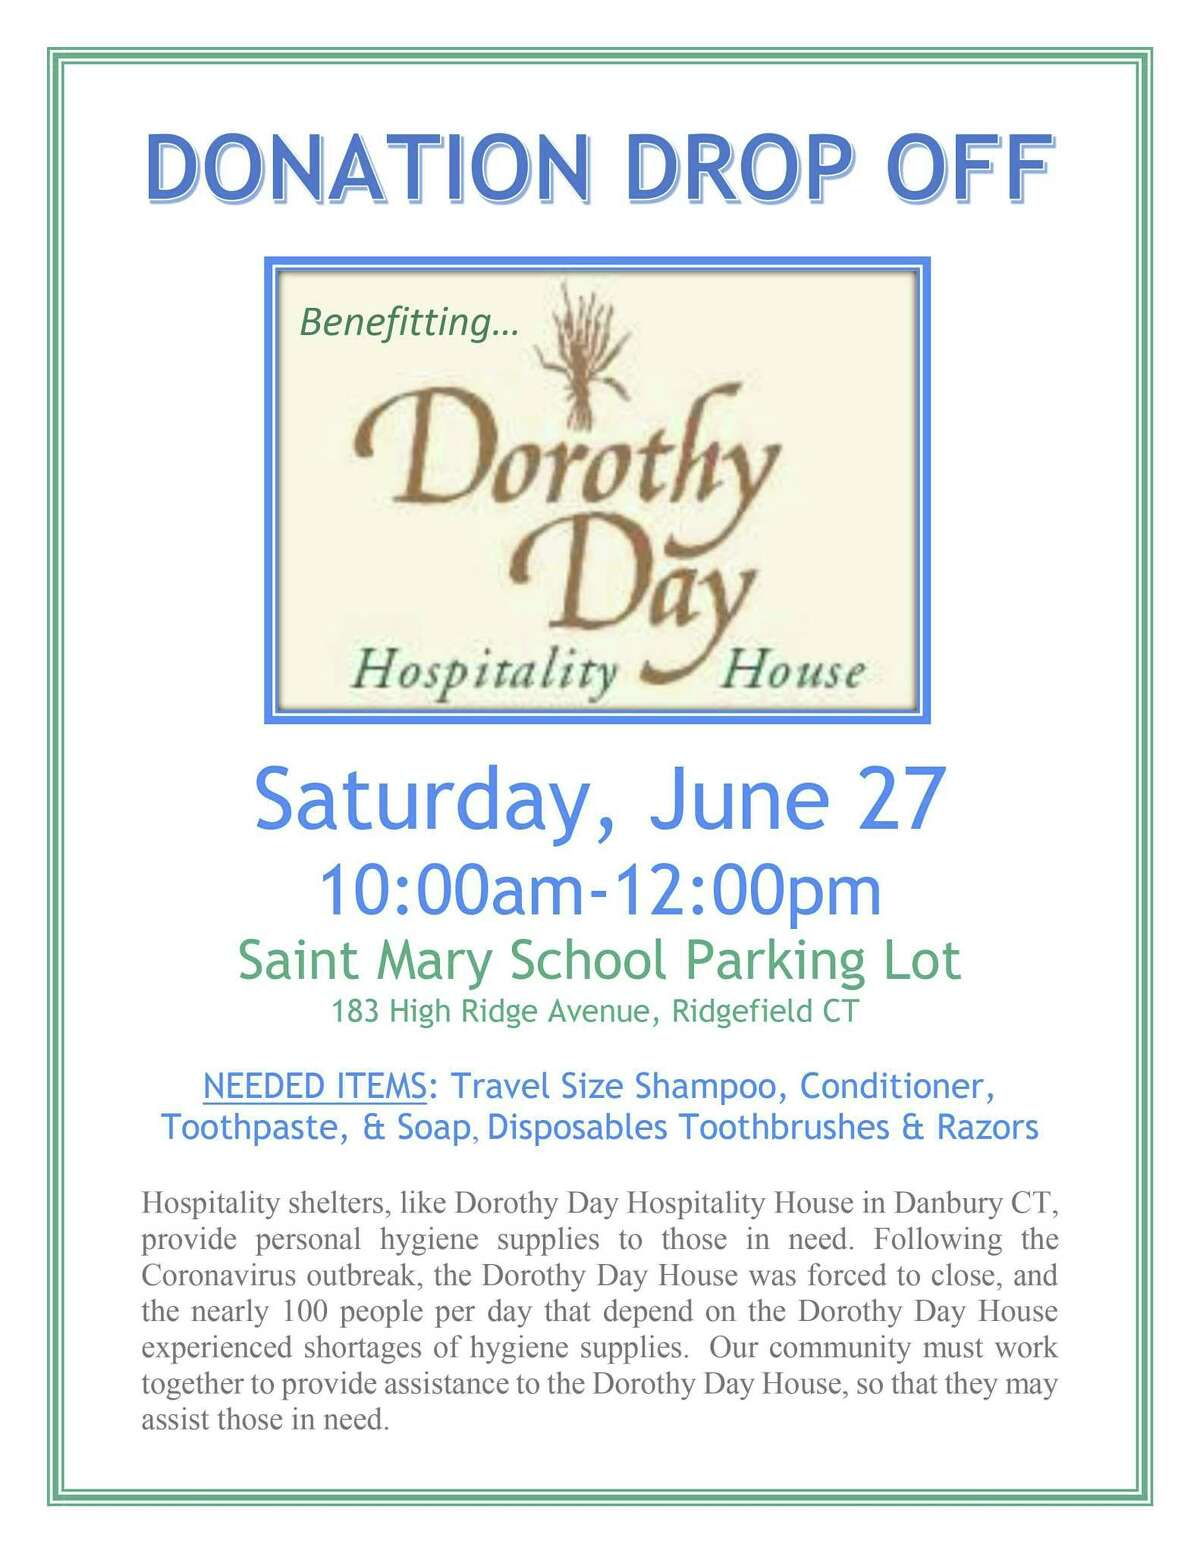 Drop off personal hygiene donations for the Dorothy Day Hospitality House on Saturday, June 27, from 10 a.m.-noon at St. Mary School in Ridgefield.